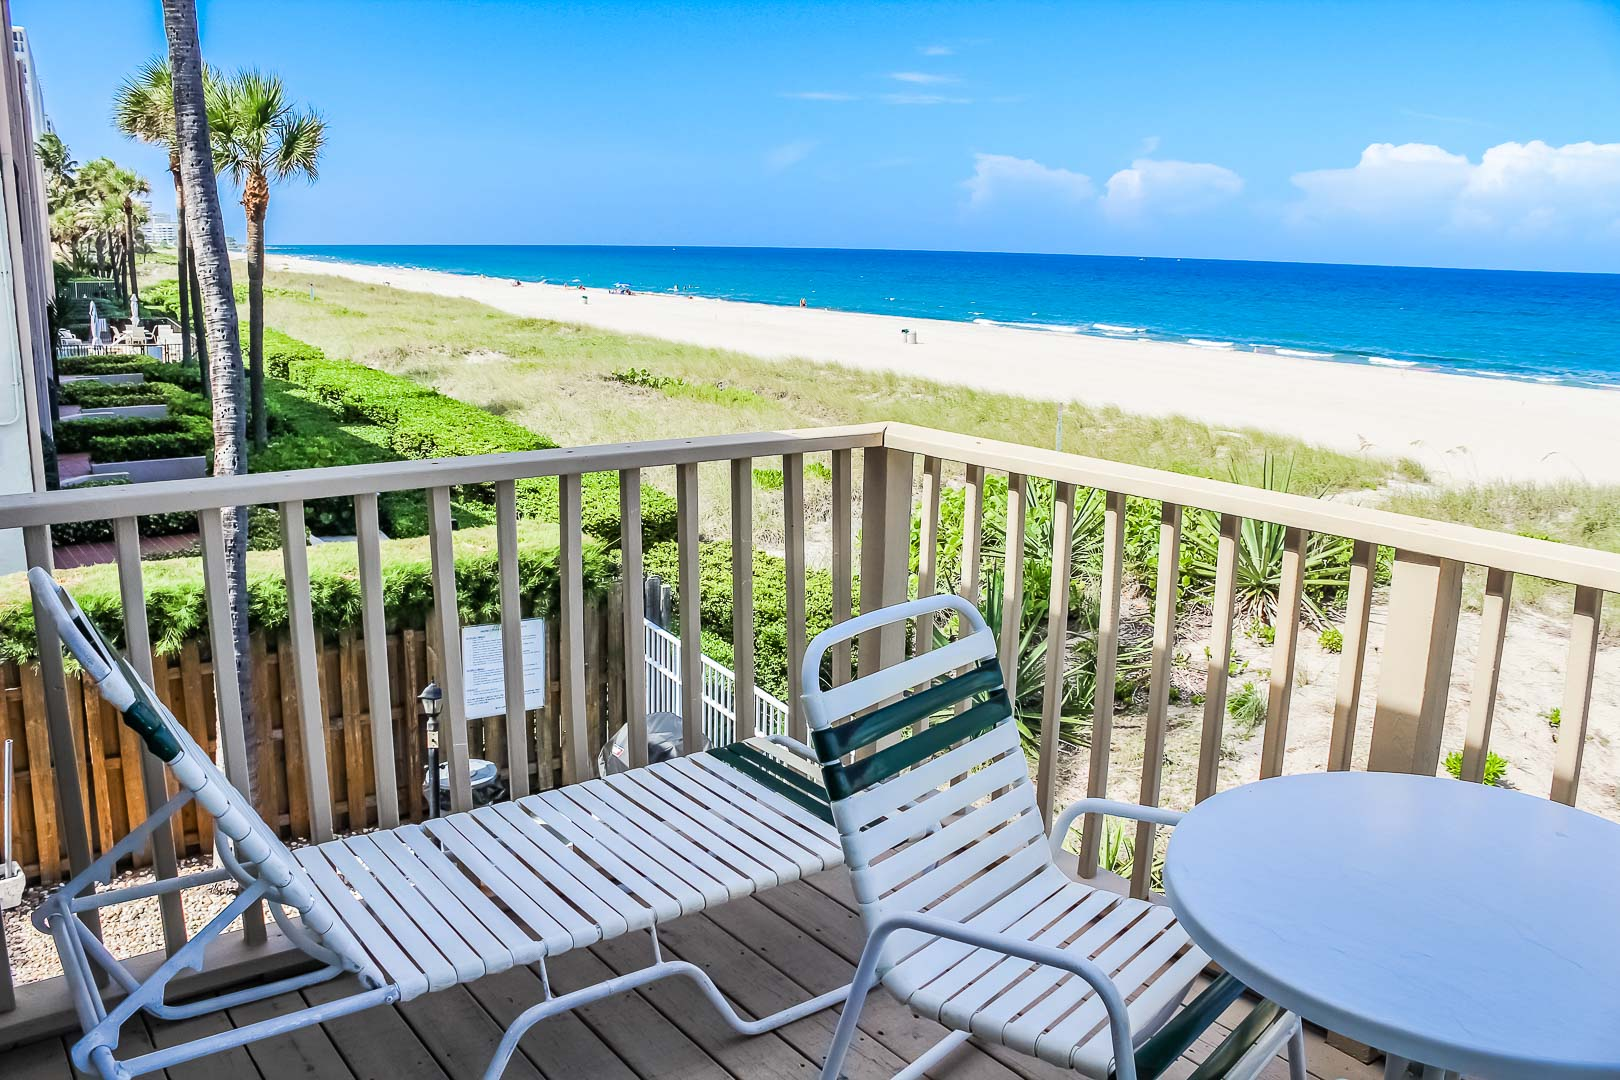 A relaxing balcony deck with a beach view at VRI's Berkshire Beach Club in Florida